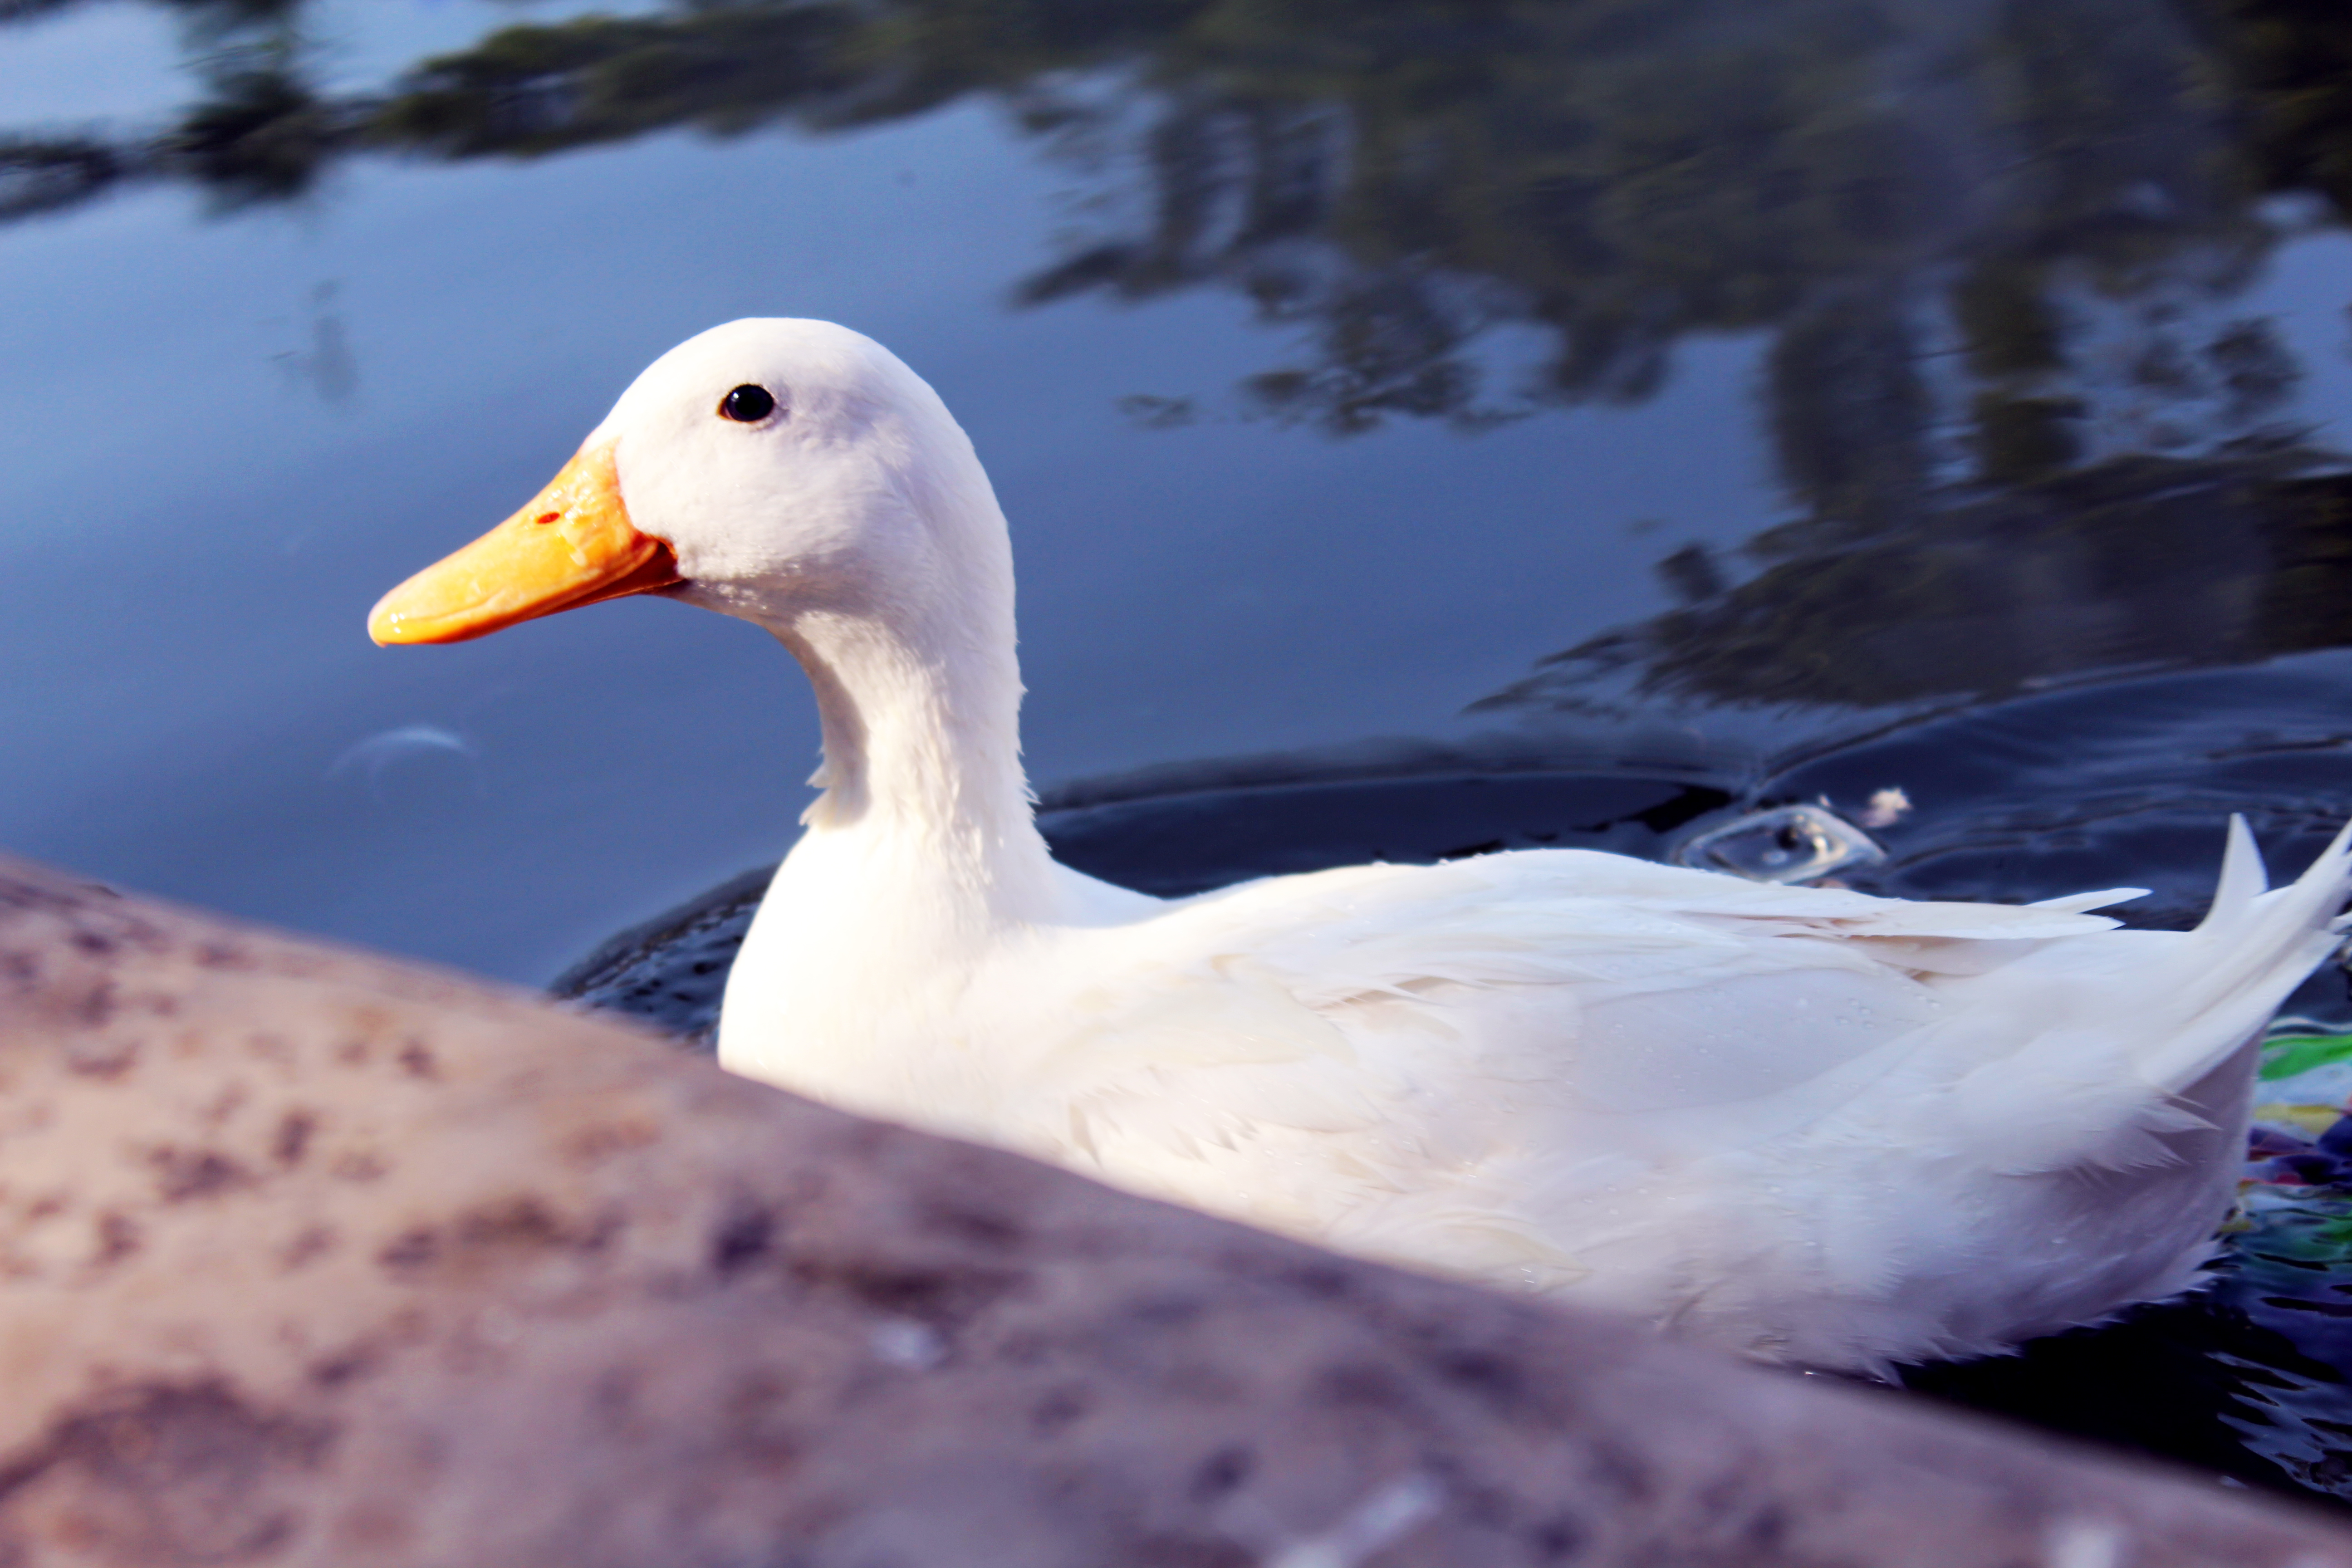 White Duck In Water : Public Domain Pictures